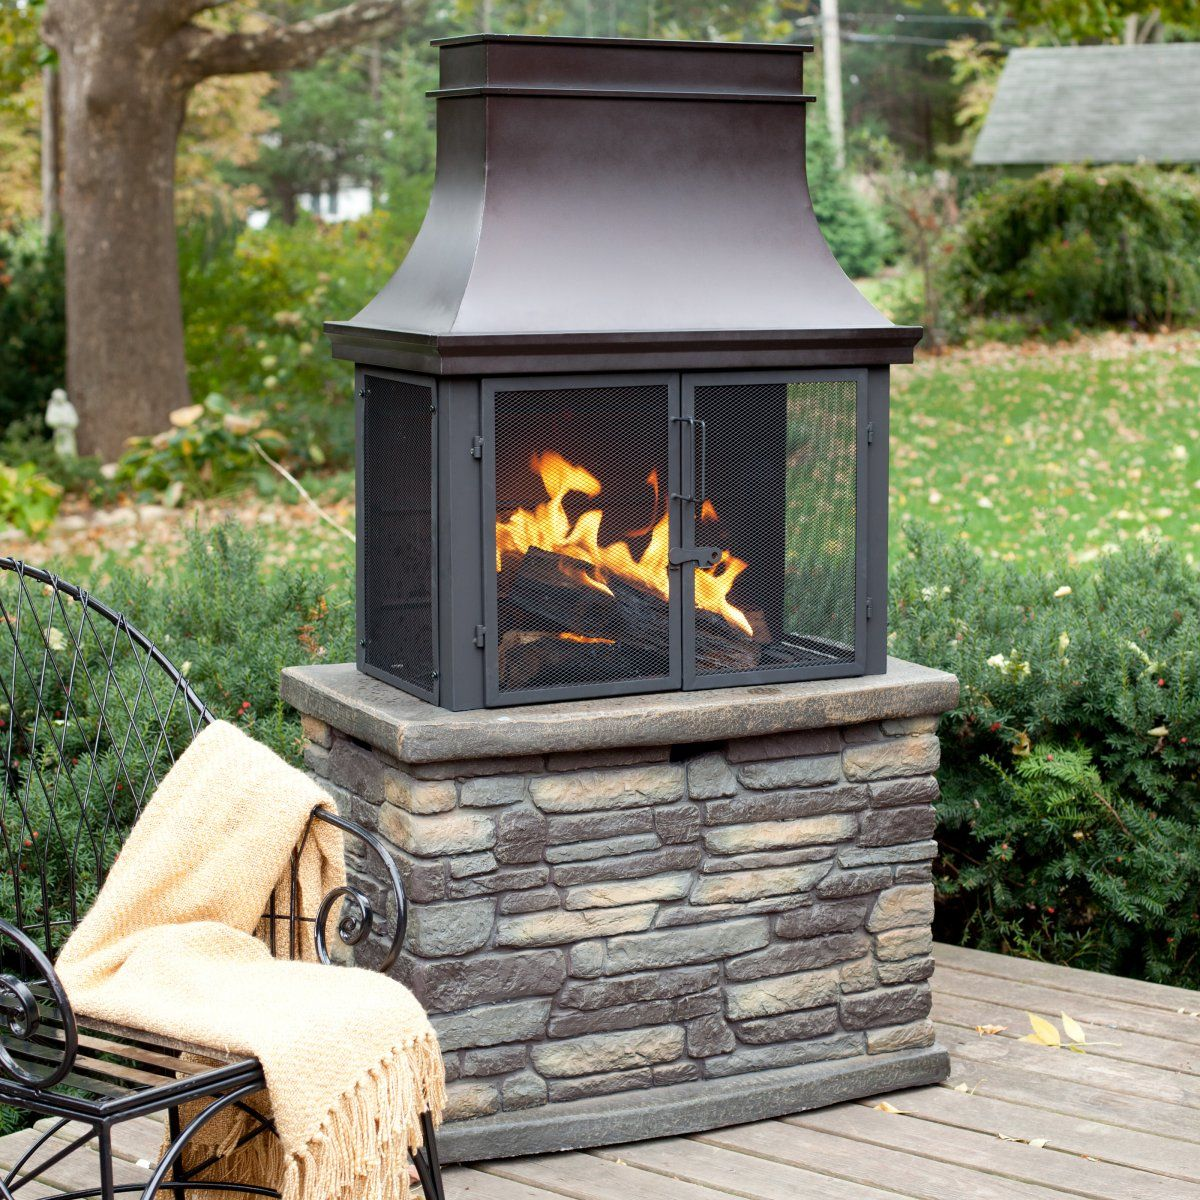 Admirable Bond Wood Burning Fireplace Outdoor Fireplaces Chimineas Home Interior And Landscaping Ologienasavecom